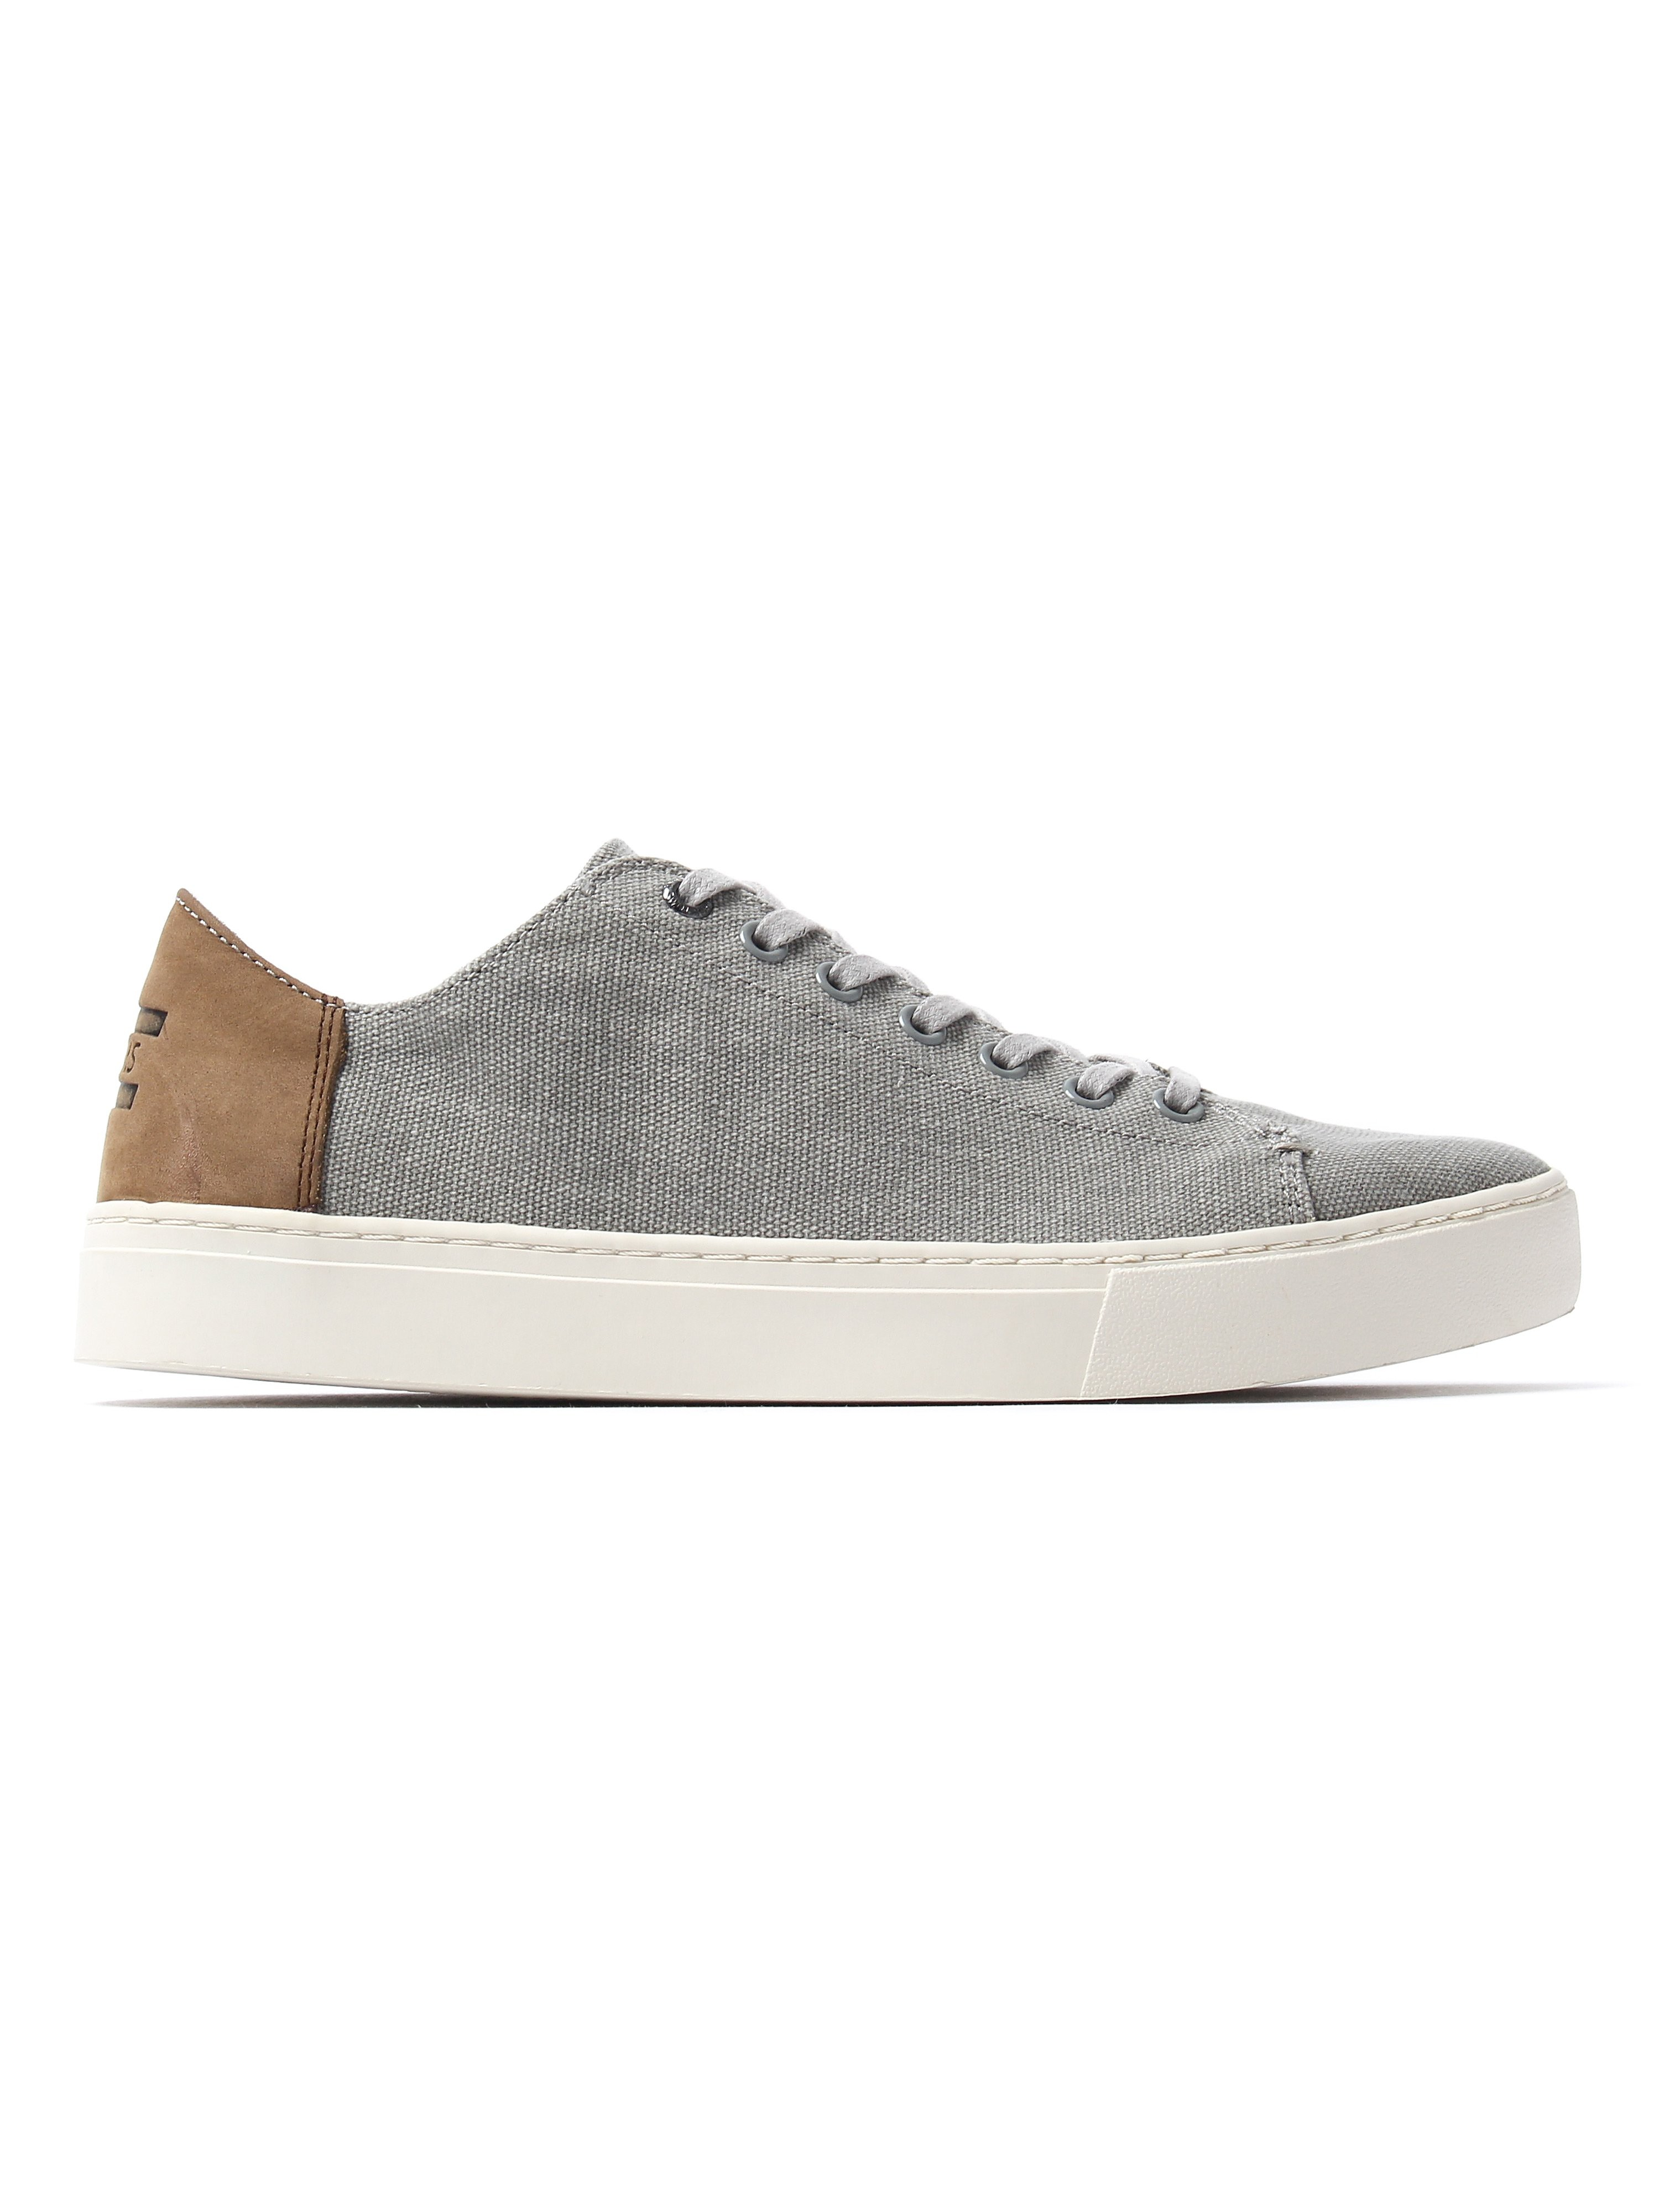 Toms Men's Lenox Washed Canvas Trainers - Drizzle Grey